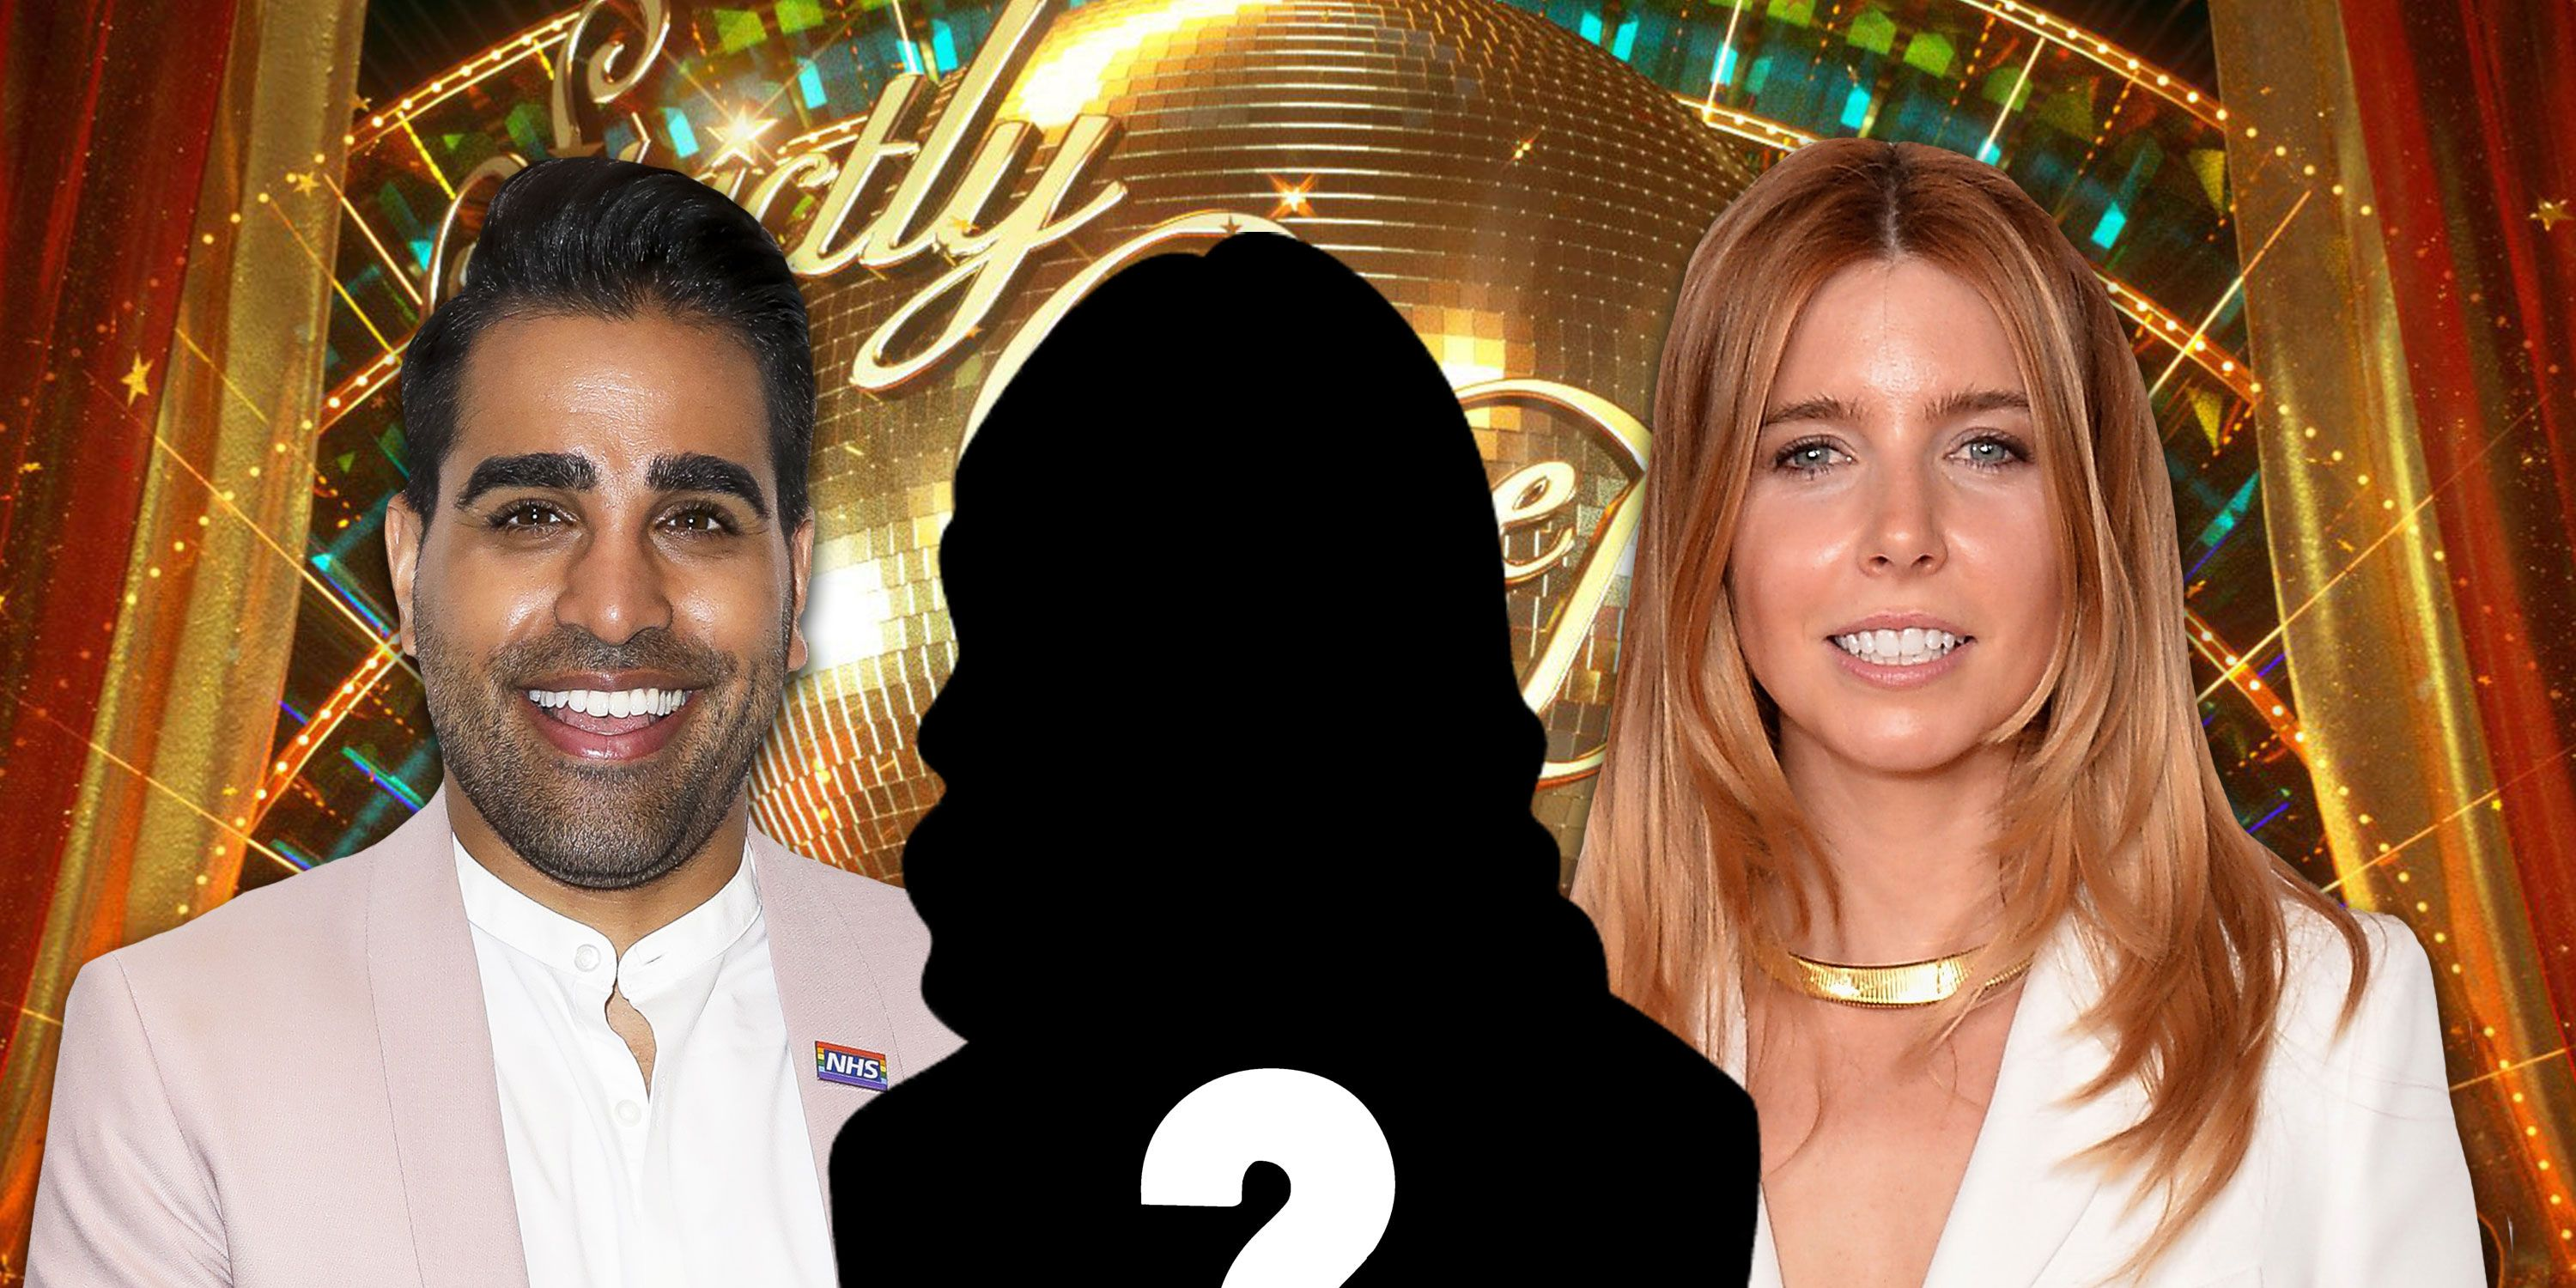 Dr Ranj Singh, Stacey Dooley, Strictly Come Dancing 208, Announcements